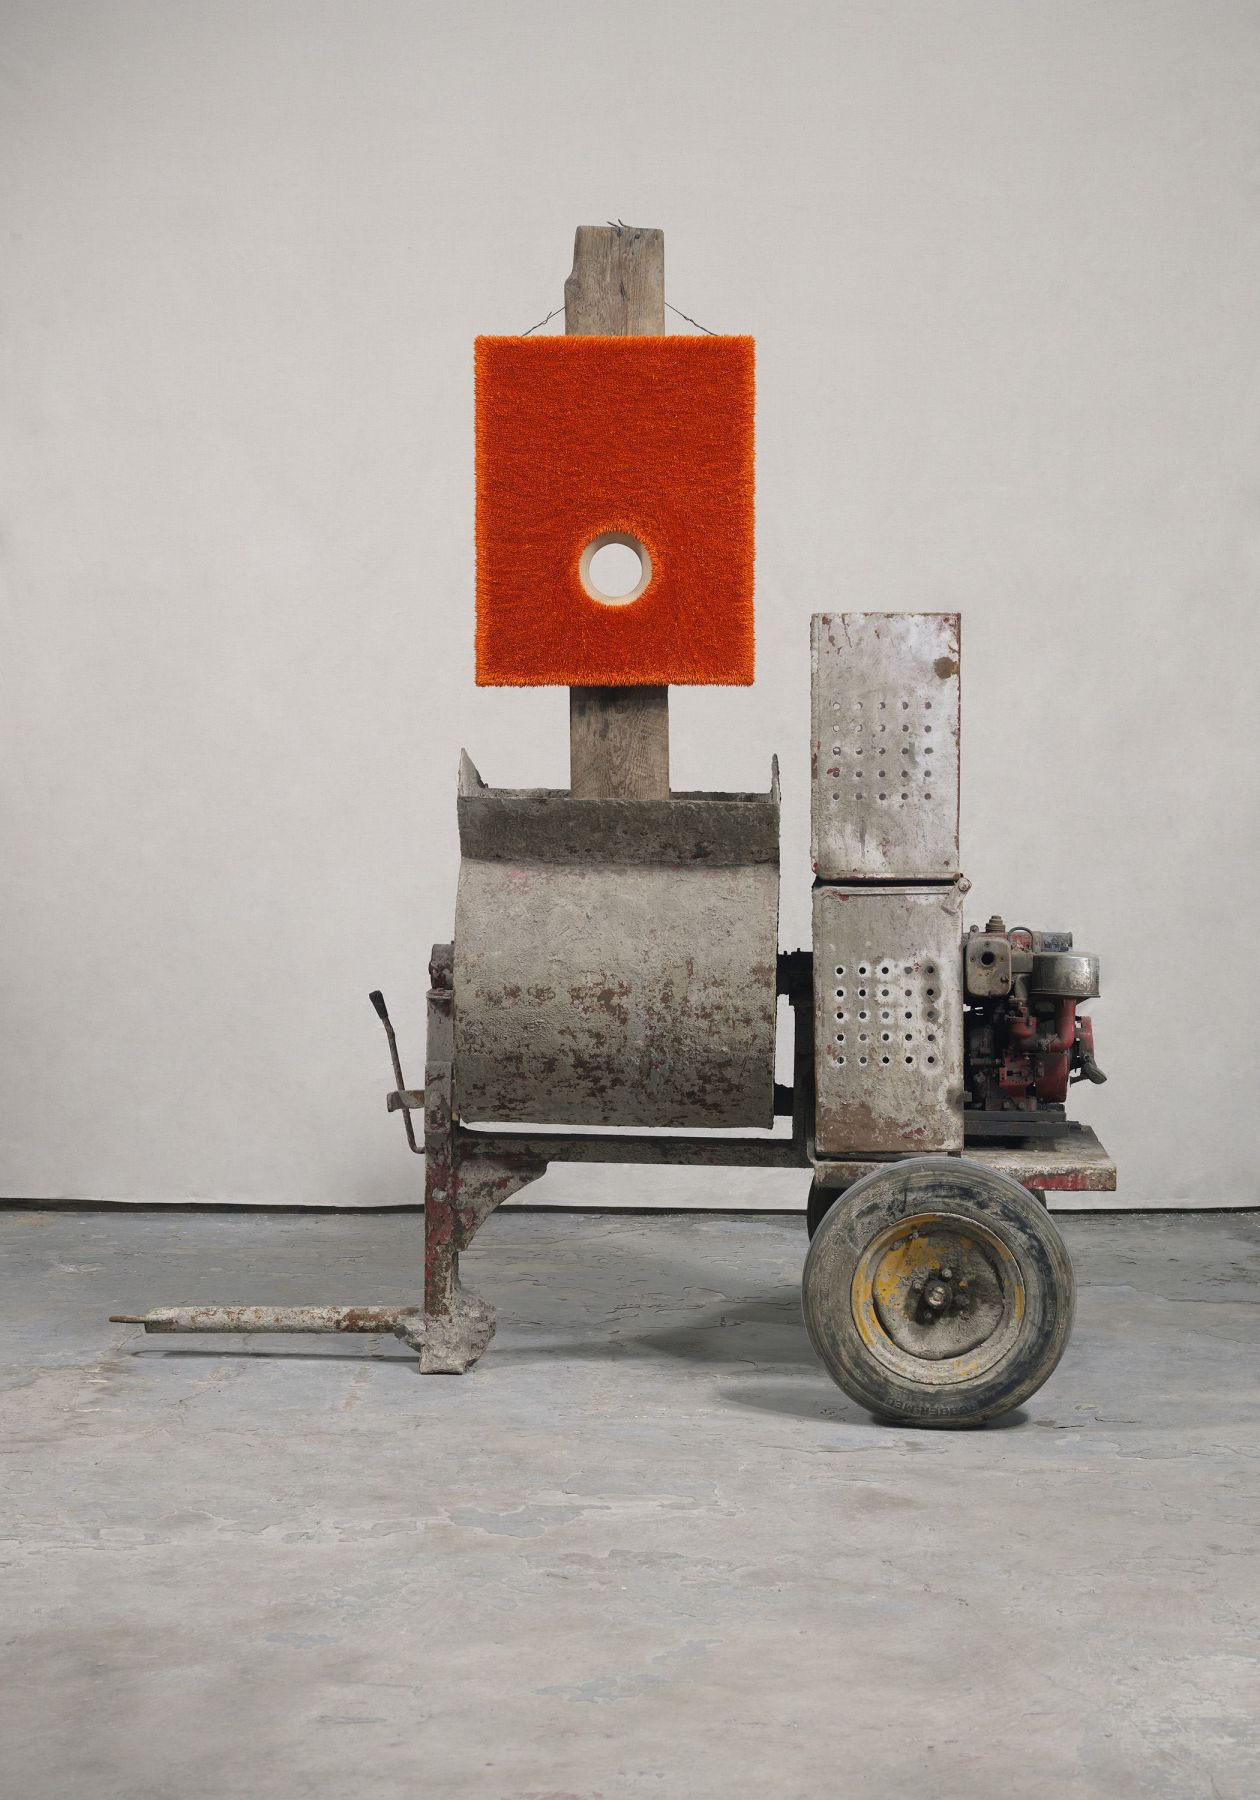 Extruded painting with hole in the center attached to a cement mixer by Donald Moffett